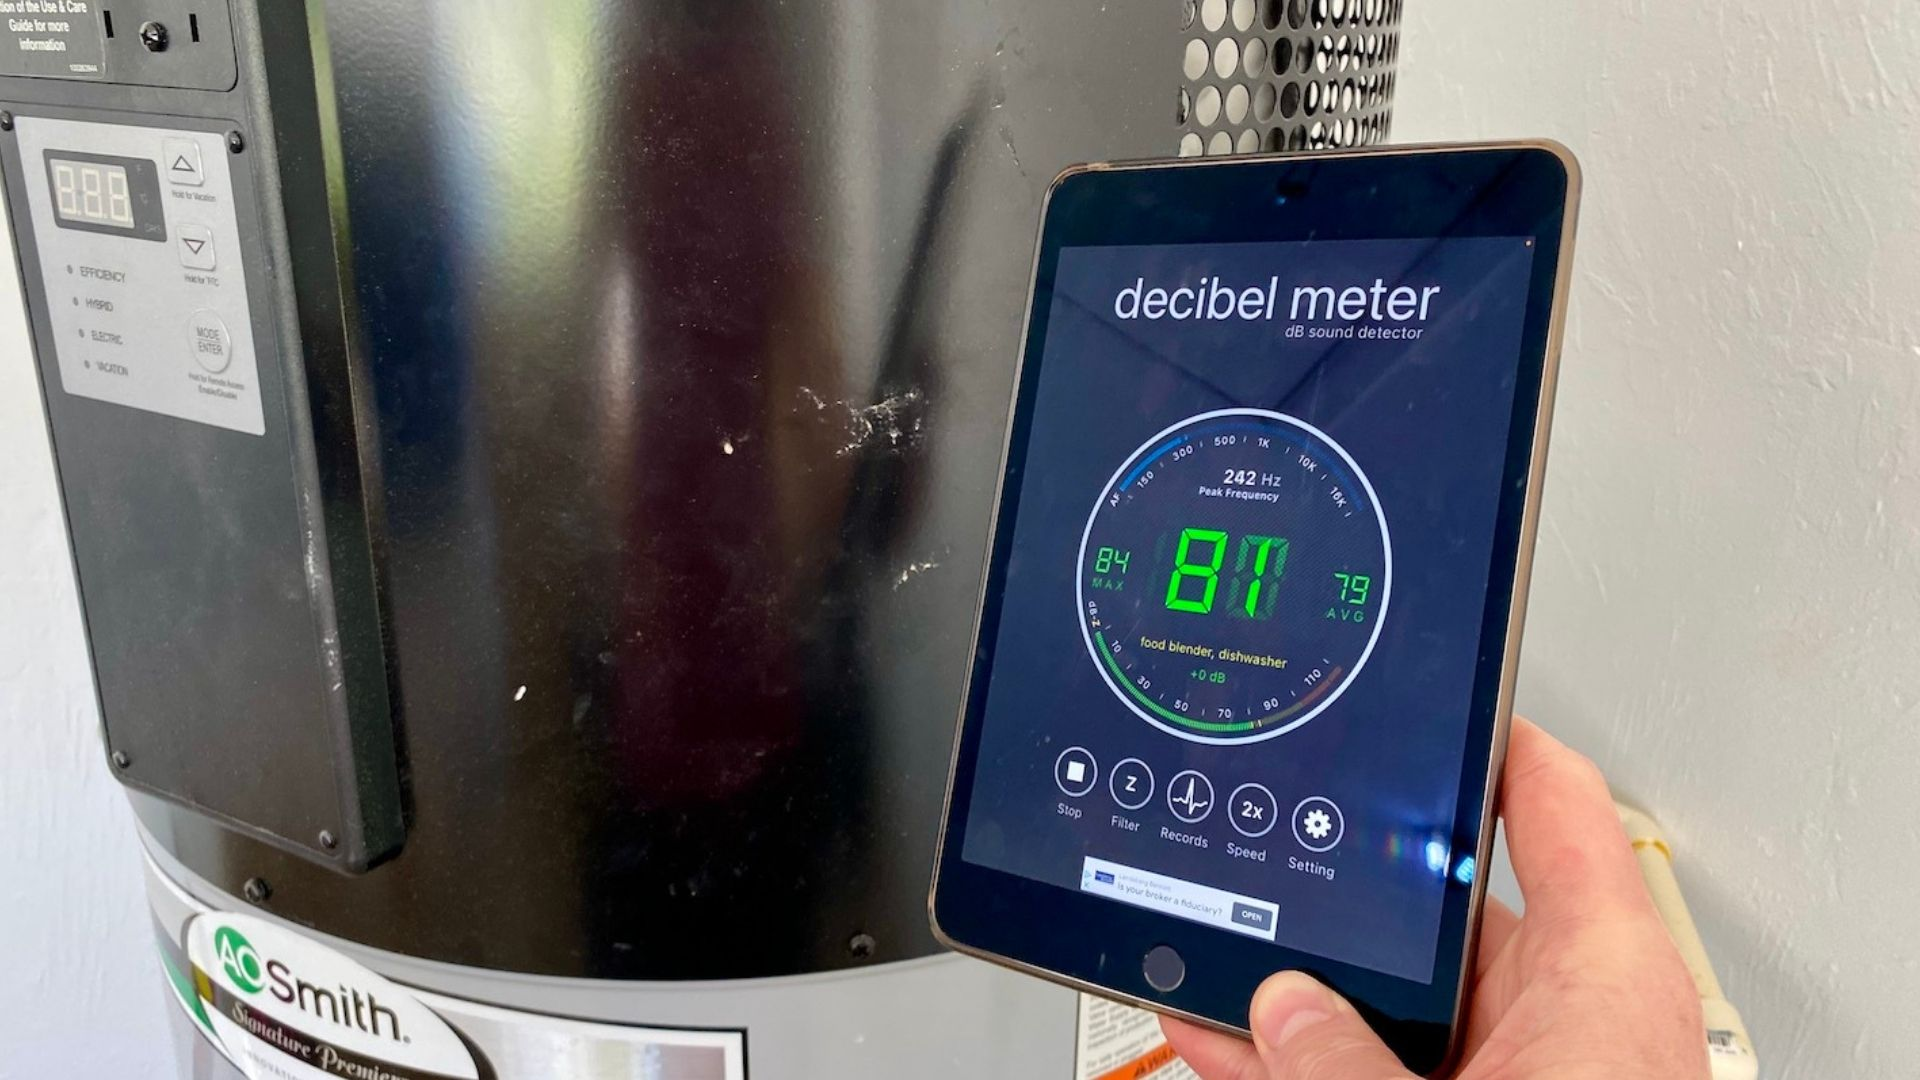 A picture of our hybrid heat pump hot water heater in the background, with me holding up an iPad. The screen shows a decibel level reading of 81, indicating how loud this hot water heater is.